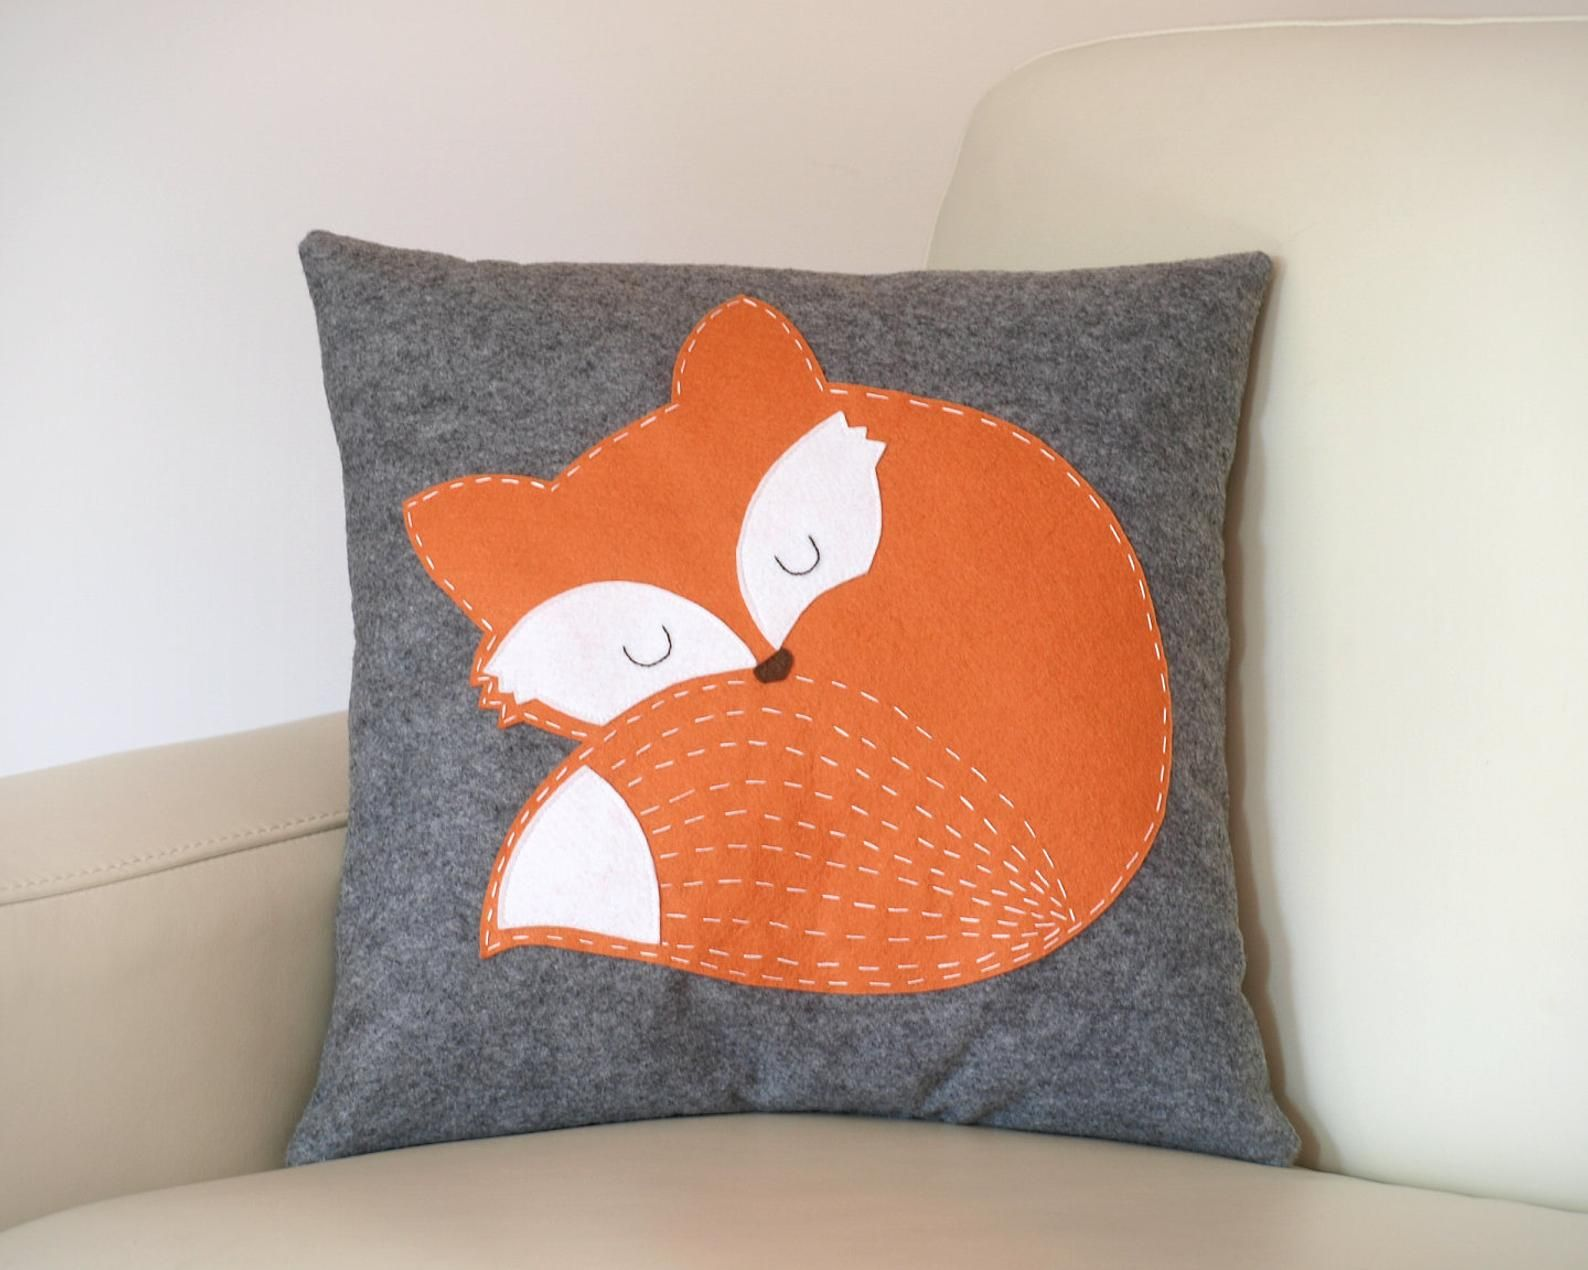 Felt pillow with fox/ animal woodland nursery cushion/ plush pillow, baby room decor/ home decor/ animal pillow/ kids room decor/ felt